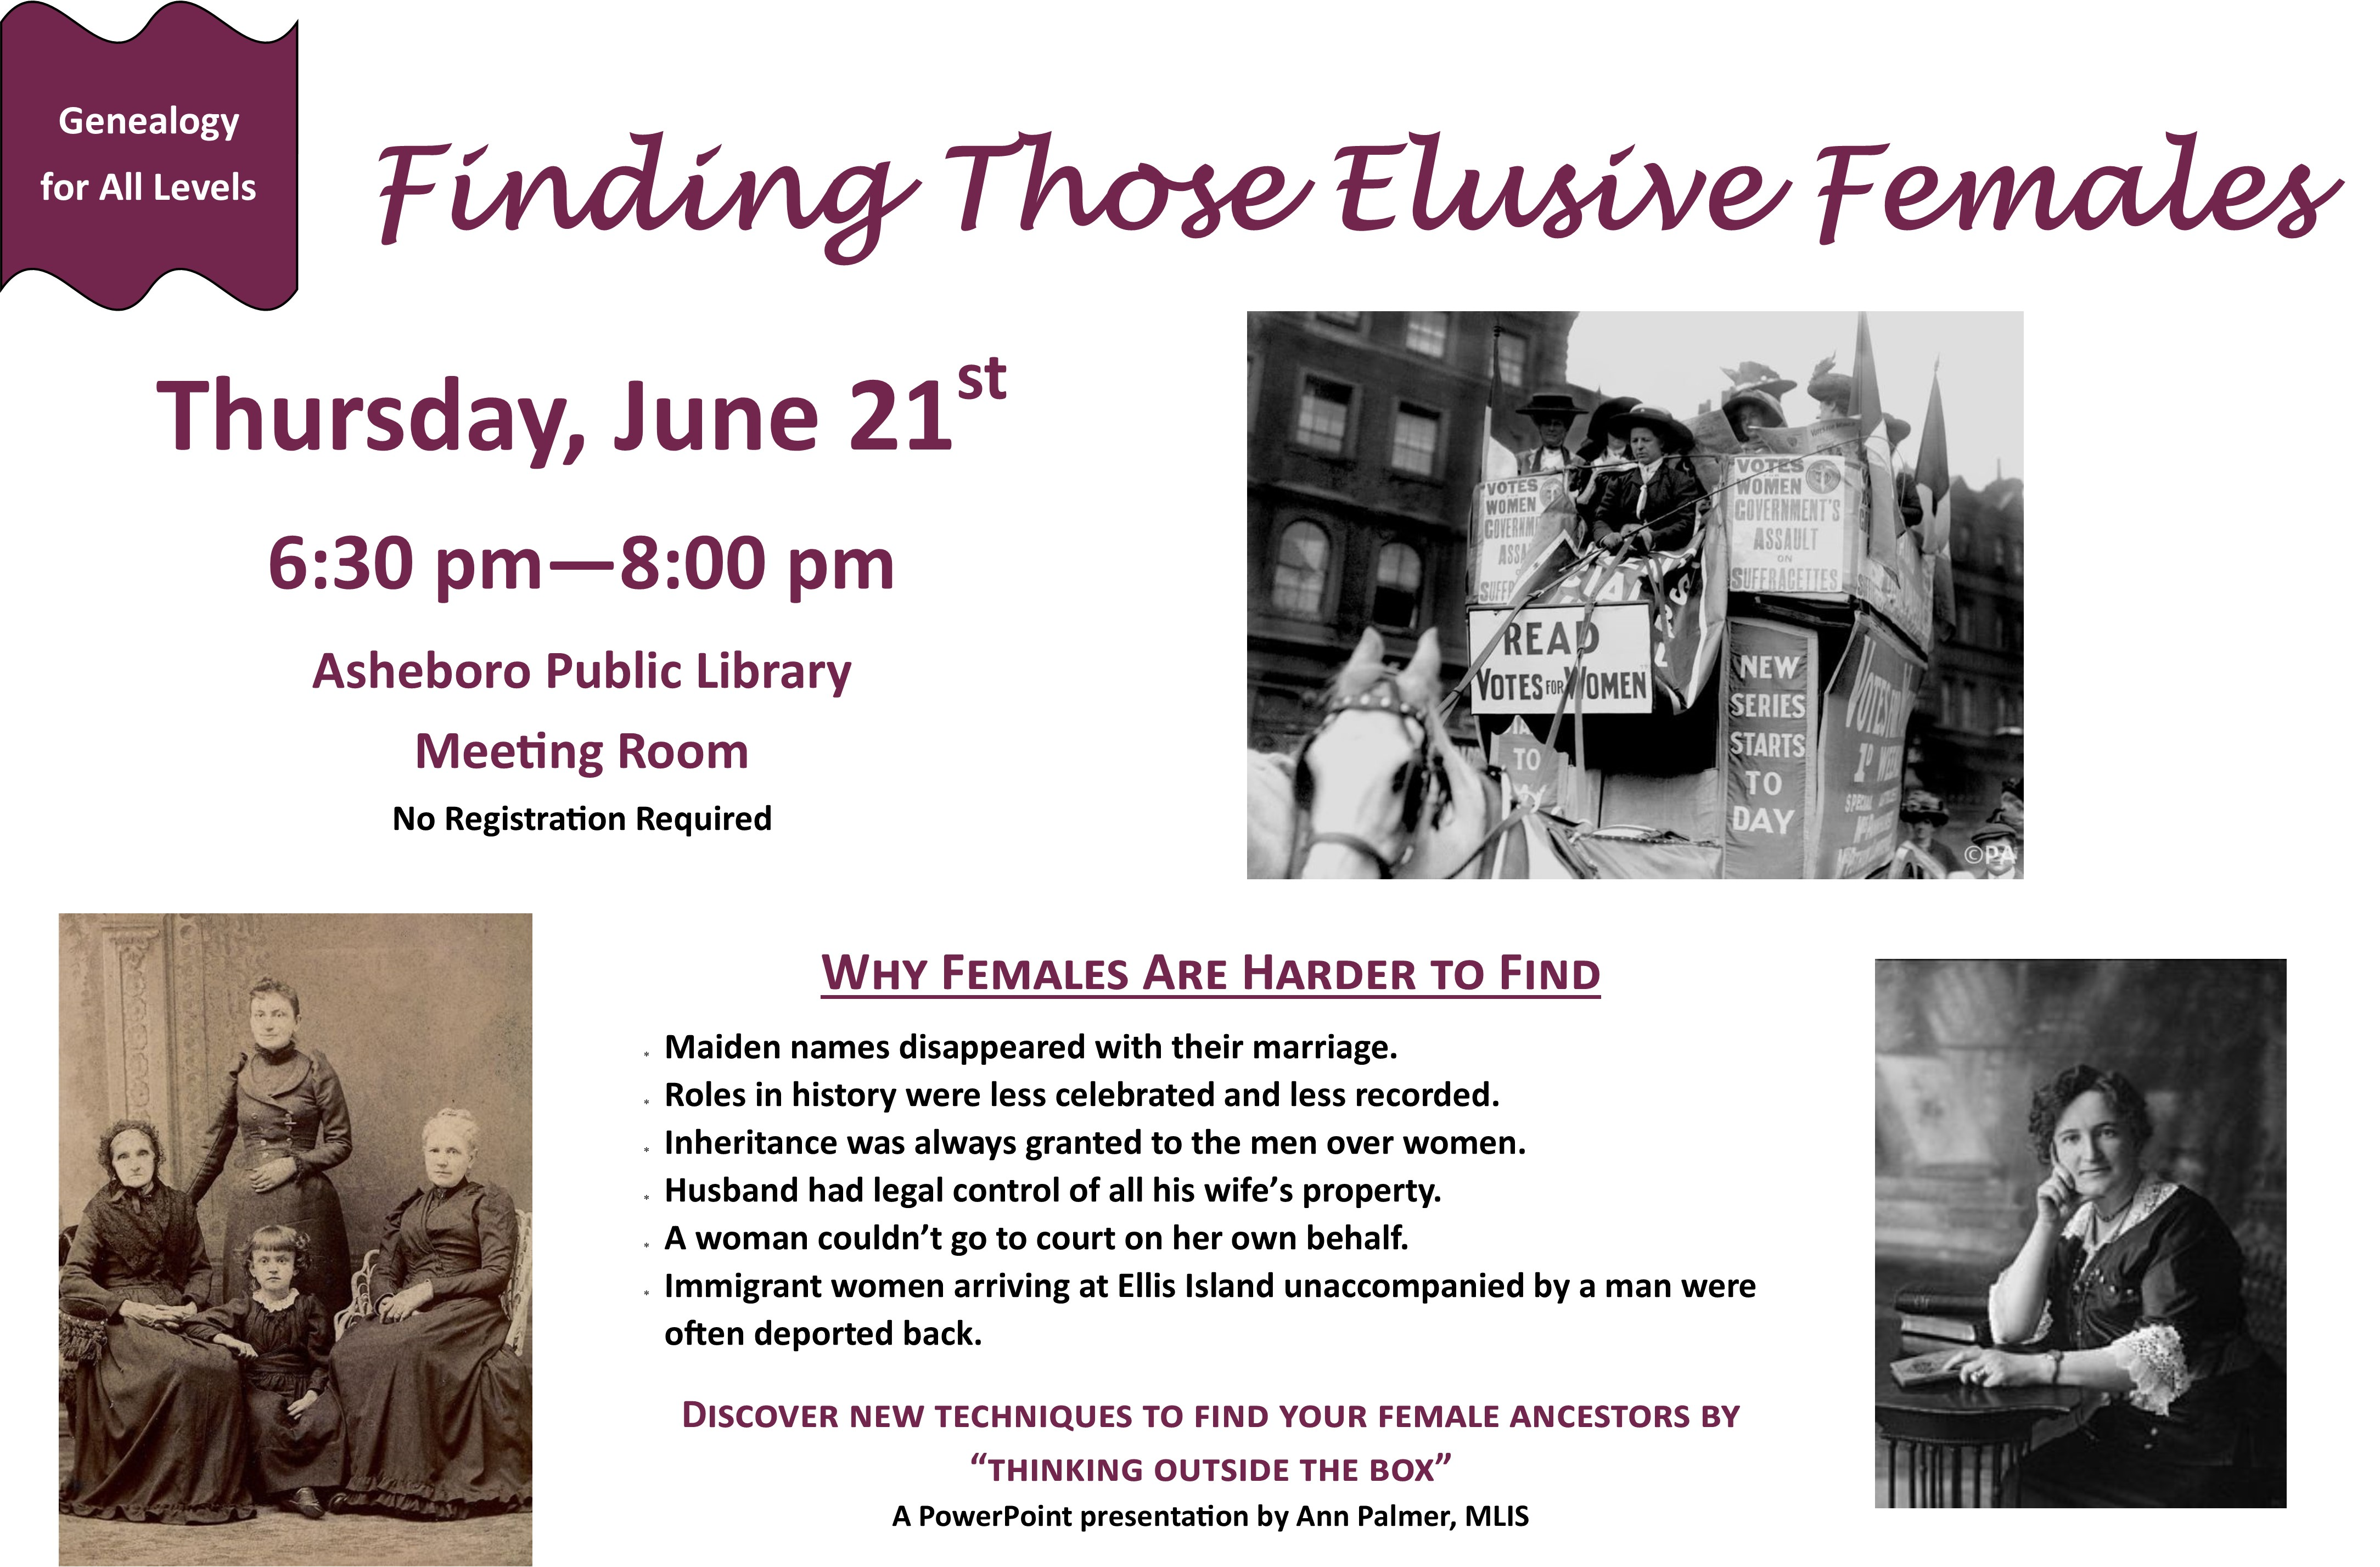 Discover new techniques to find your female ancestors by thinking outside of the box on Thursday June 21st at the Asheboro Public Library!